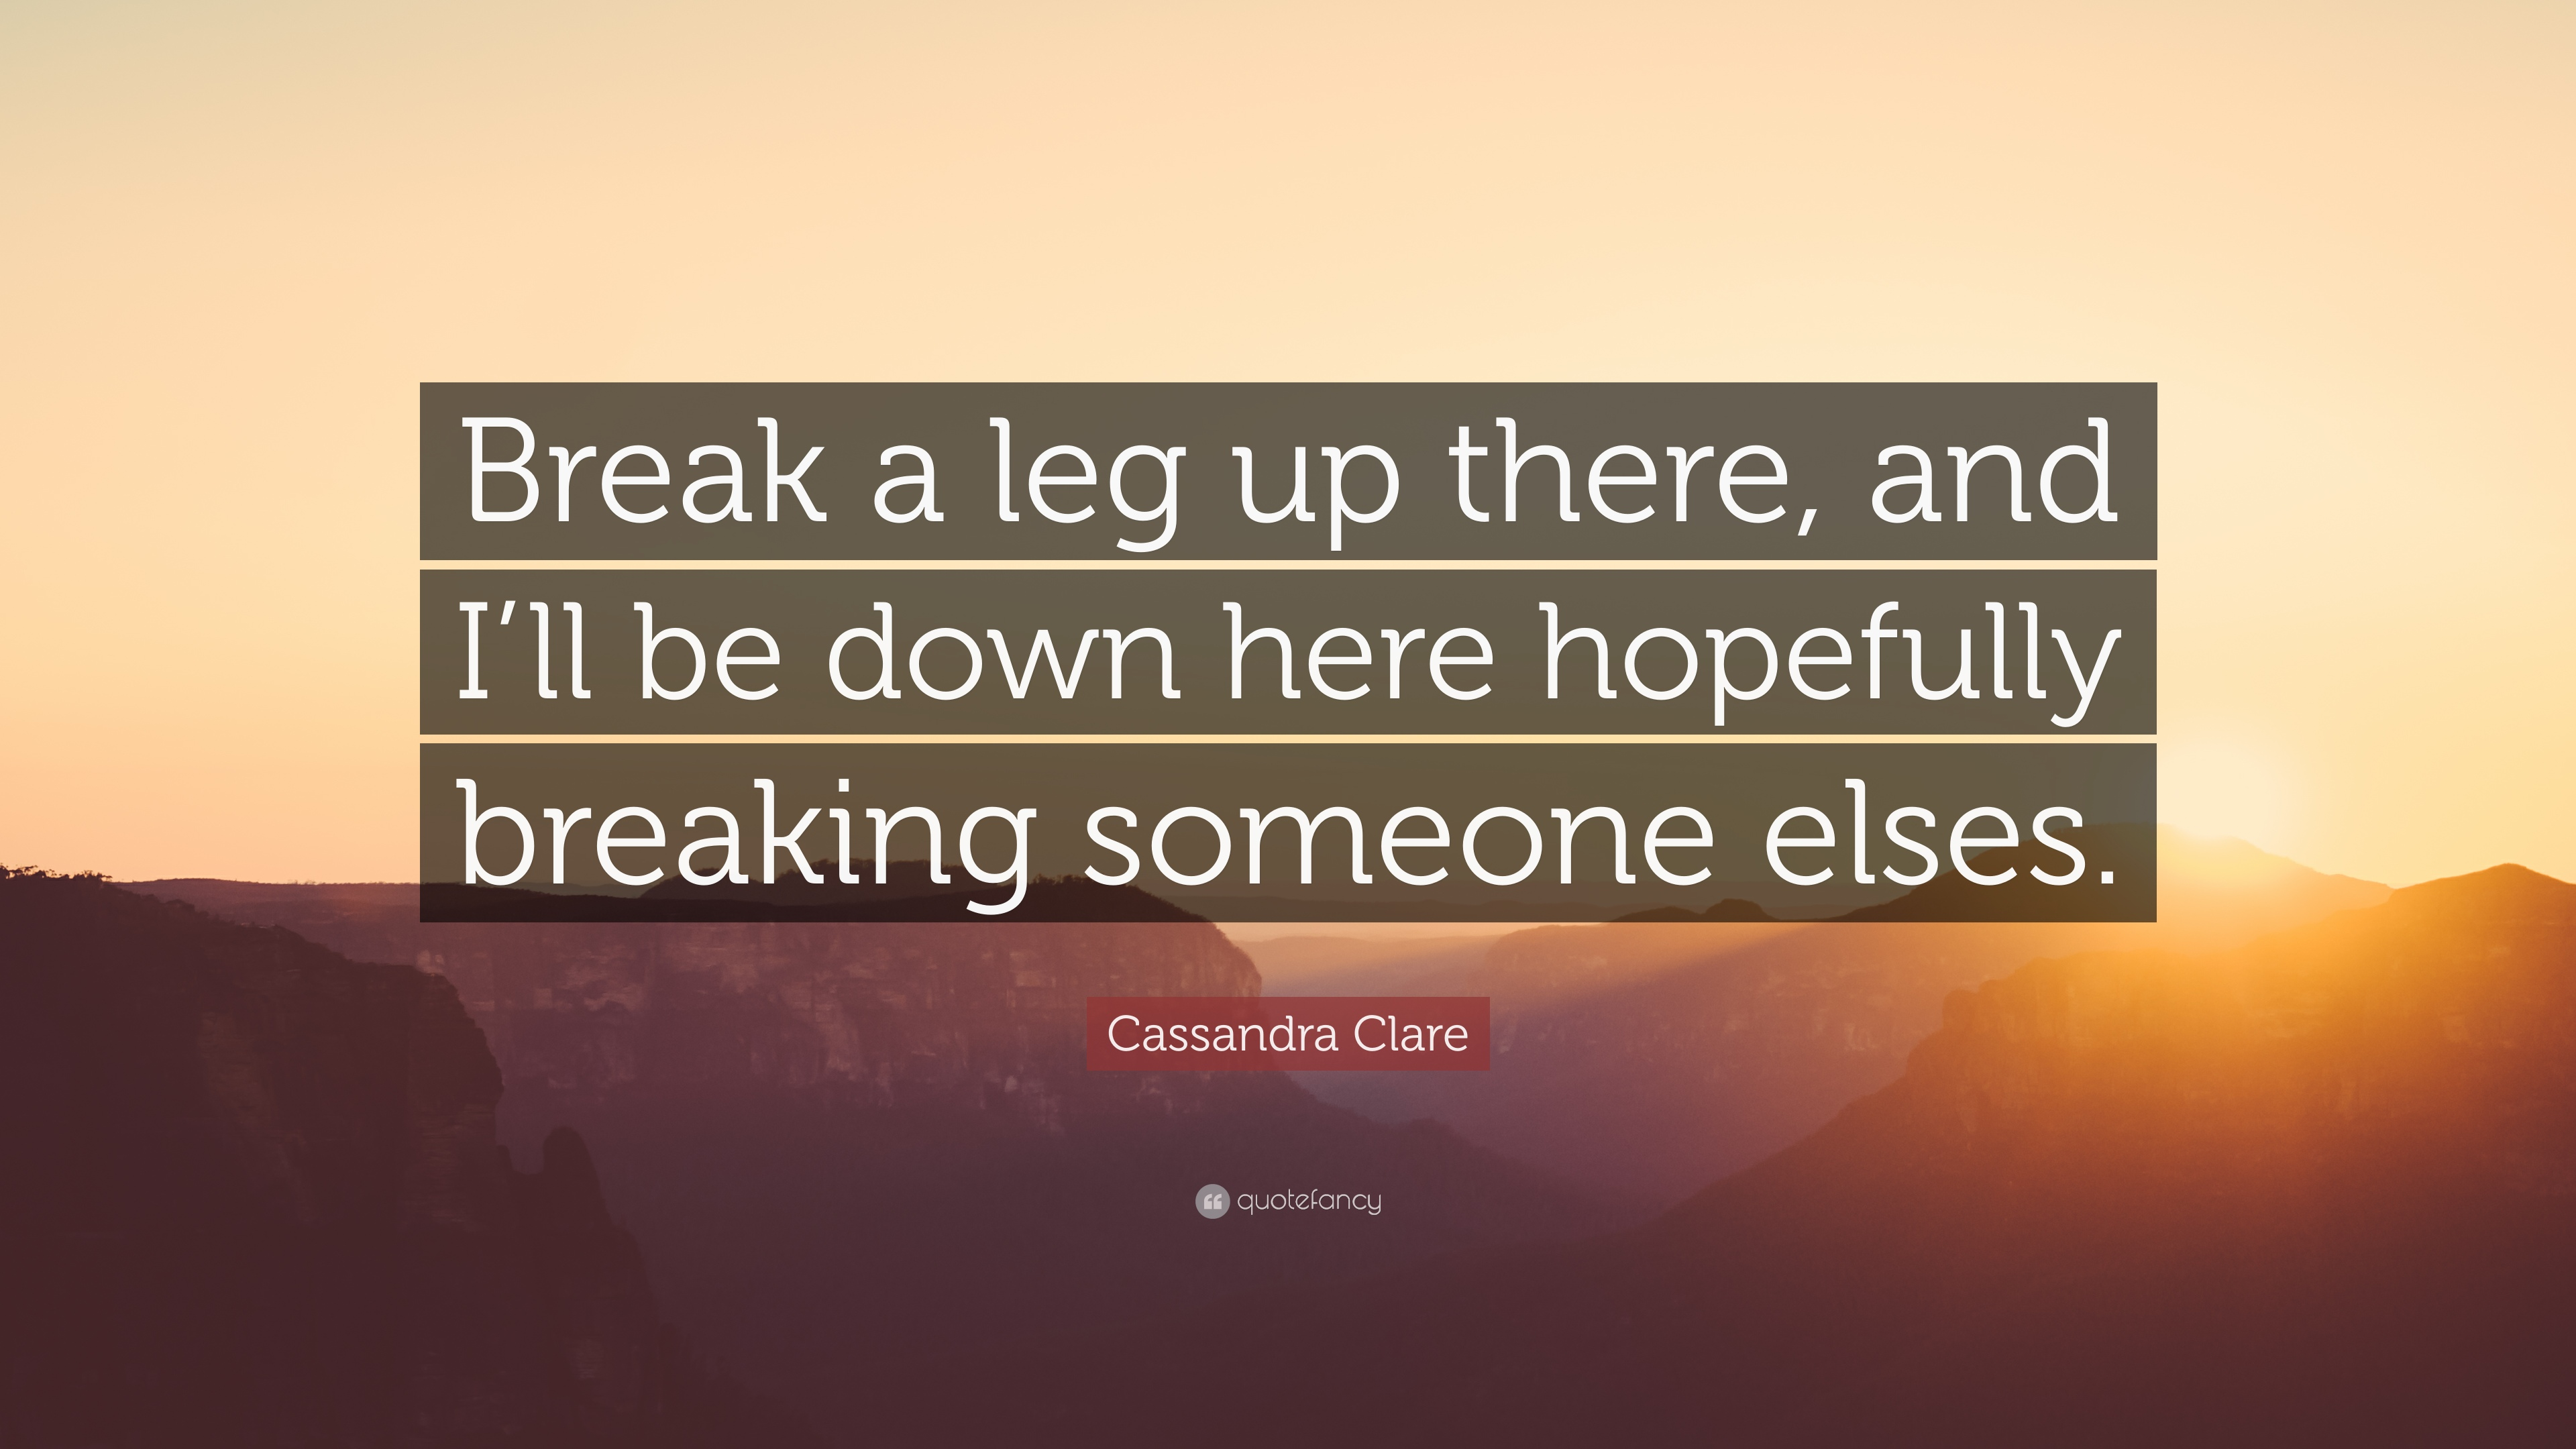 Cassandra Clare Quote: Break a leg up there, and Ill be